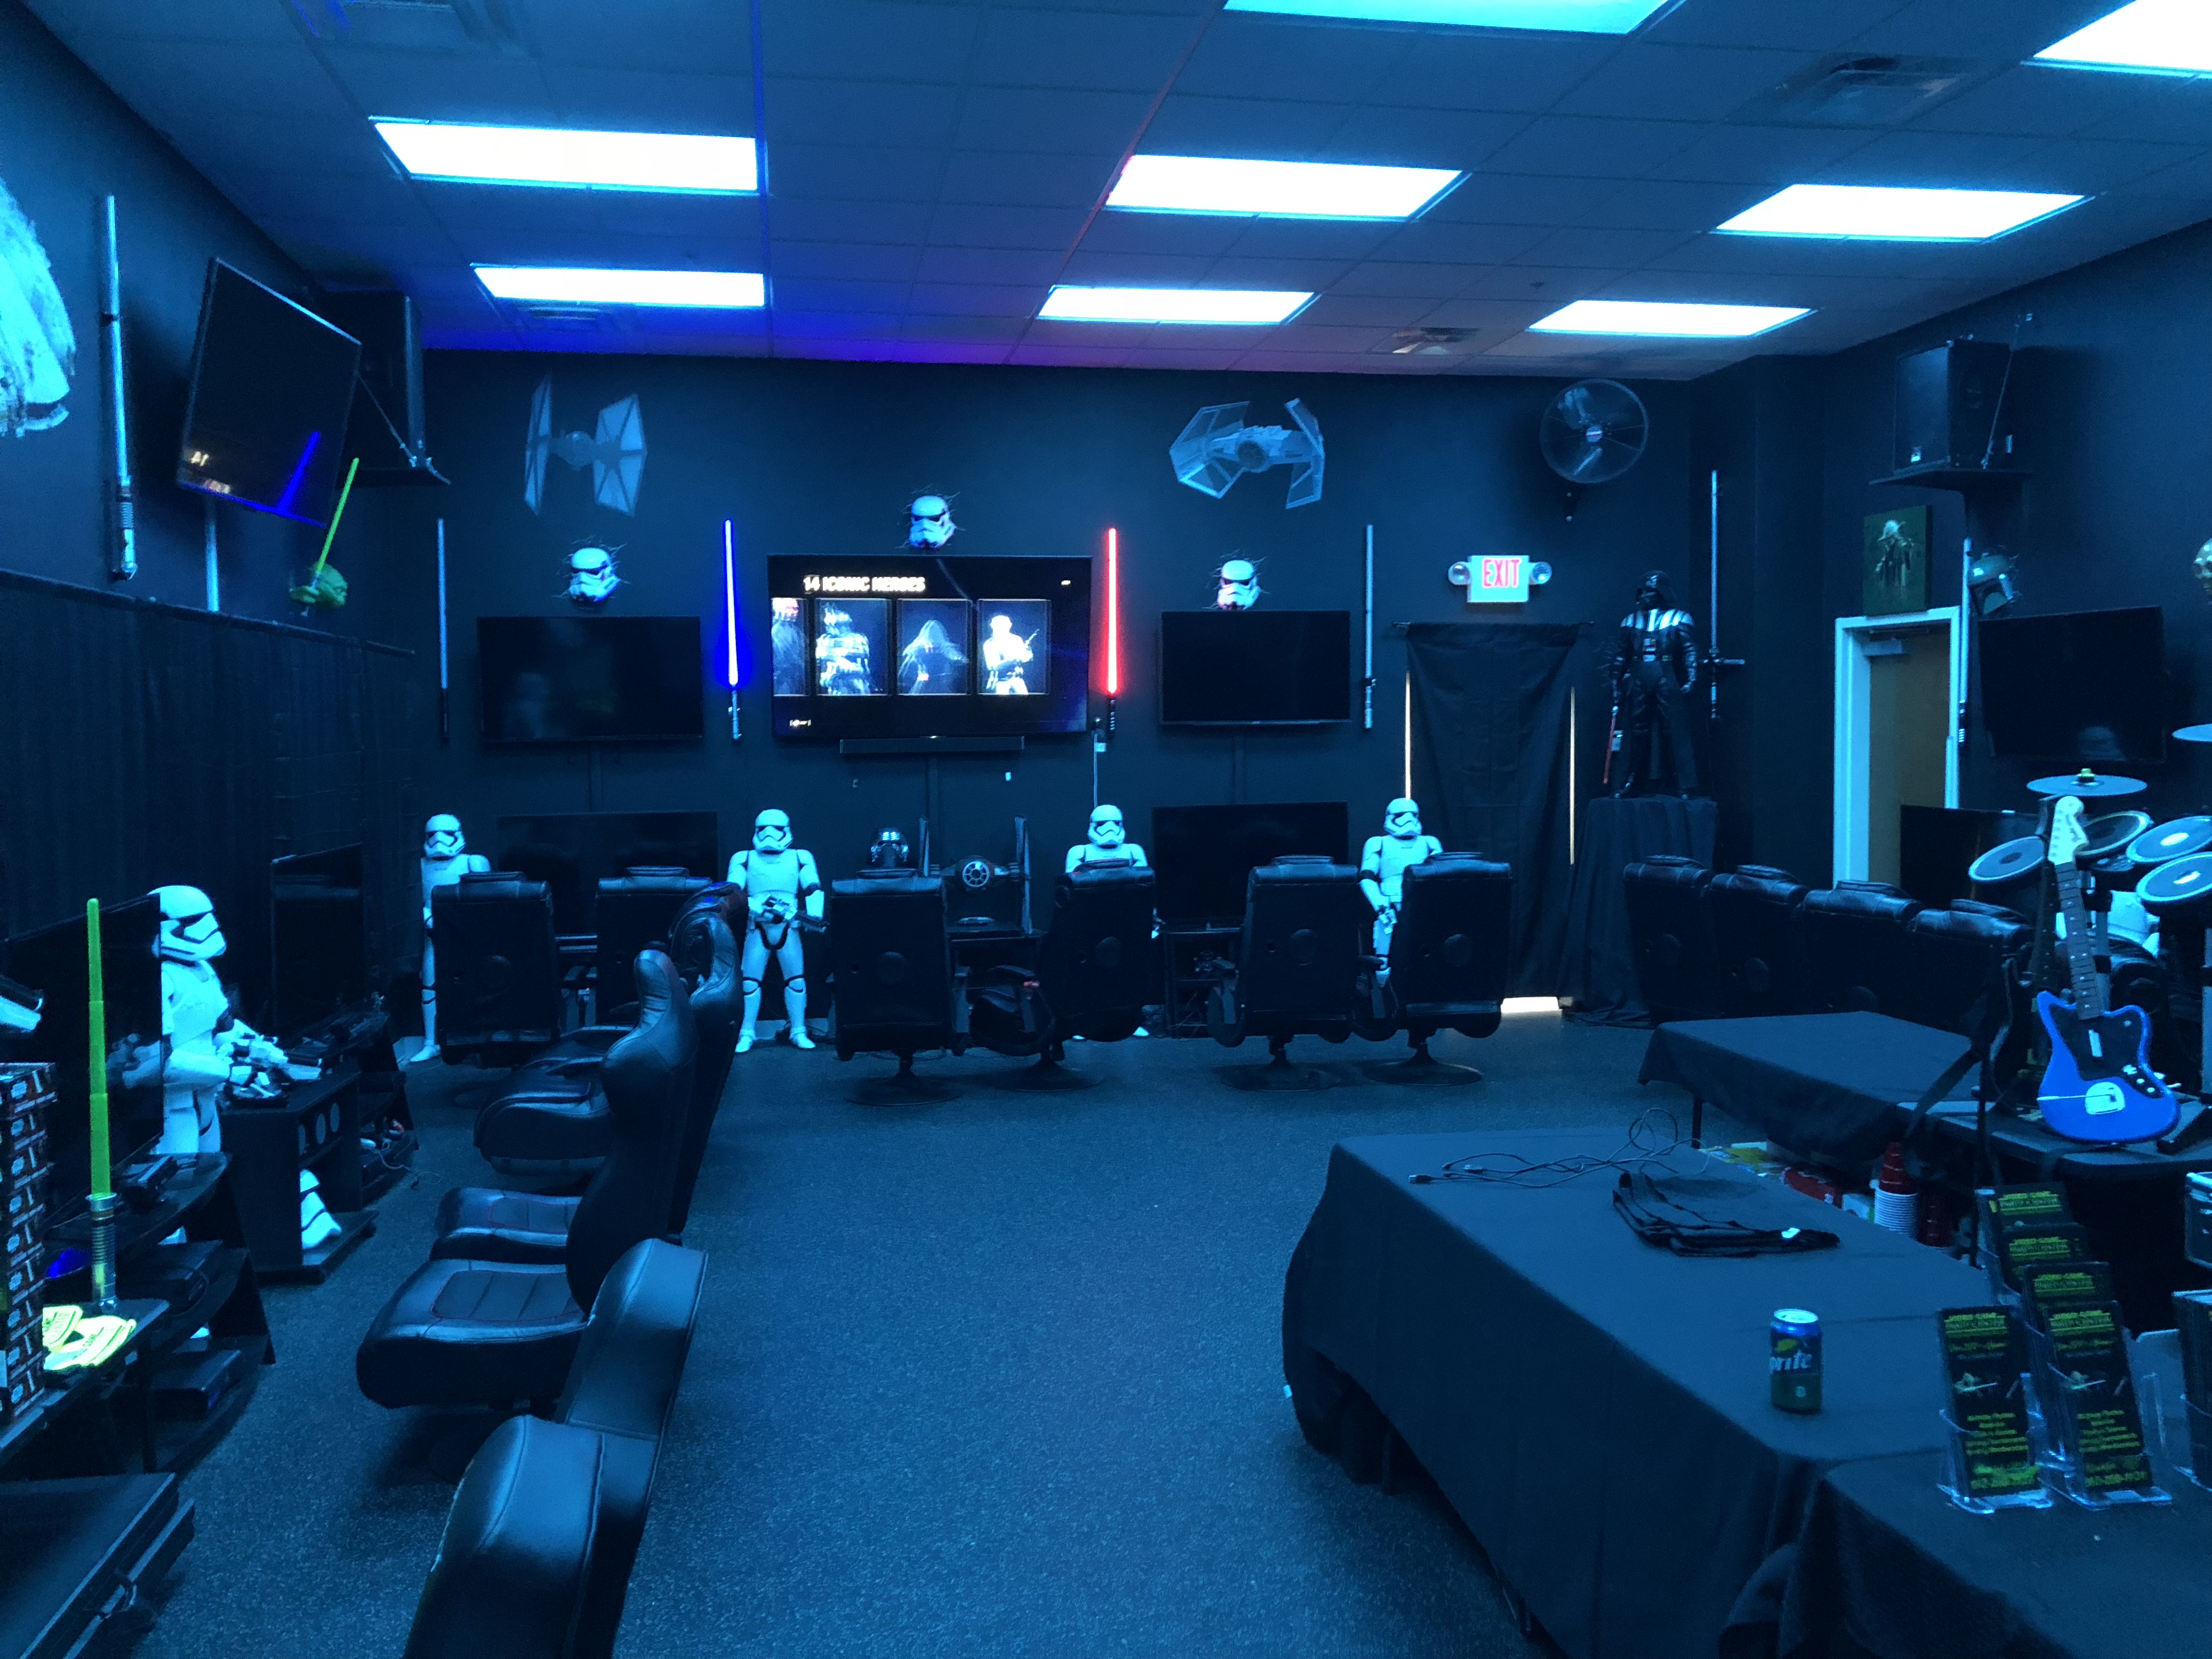 82b4eb05f0c Video Game Party Center 1578 Sussex Tpke Ste 78